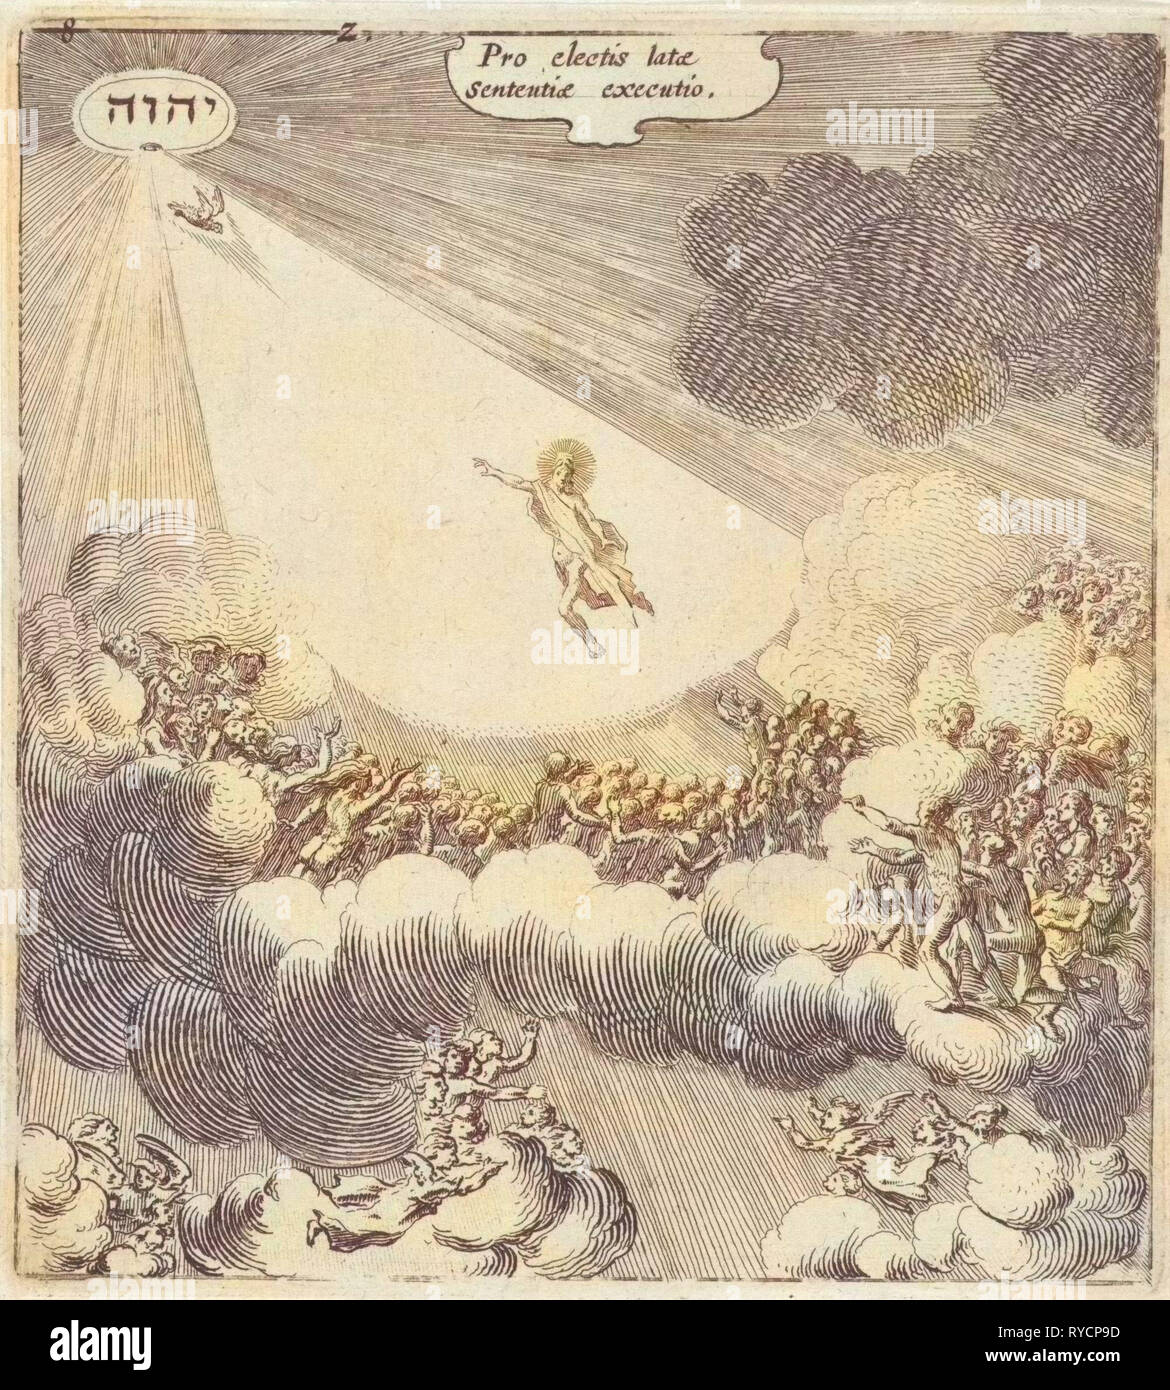 The elect are with the help of angels, back to Christ, directed upwards, print maker: Gillis van Scheyndel (I), Dating 1625 - Stock Image